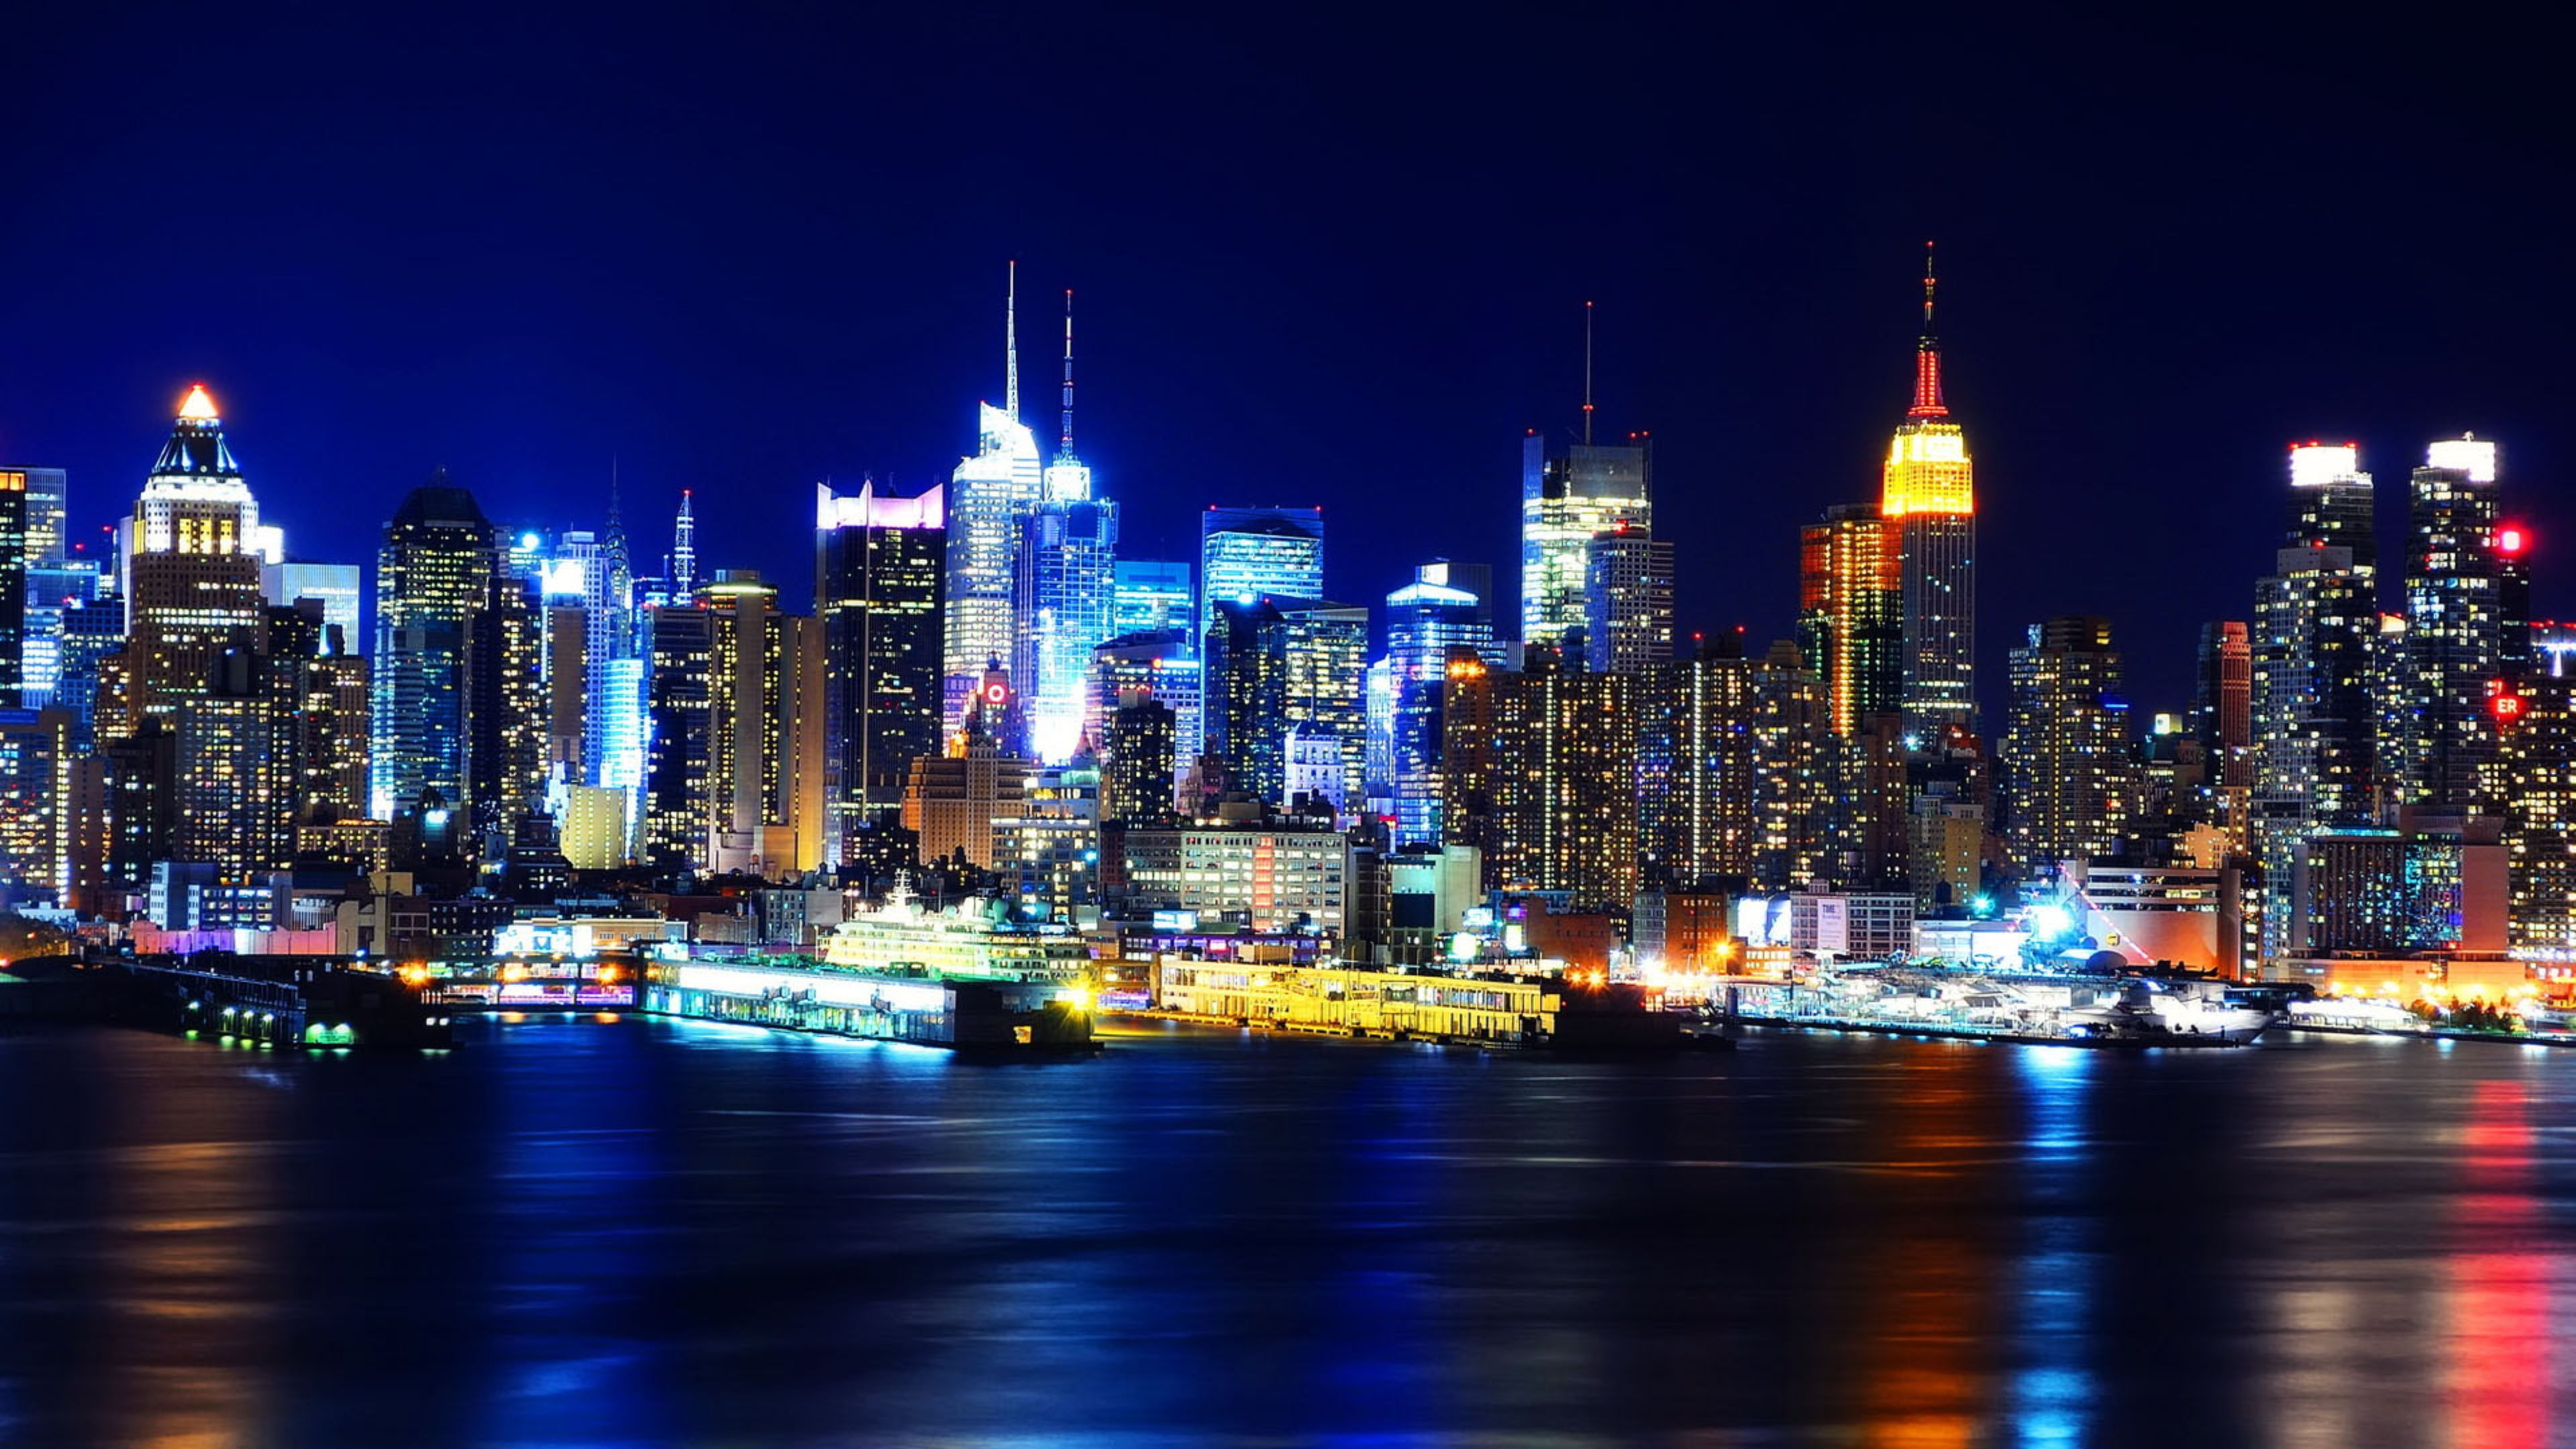 New York 4k Wallpapers Top Free New York 4k Backgrounds Wallpaperaccess